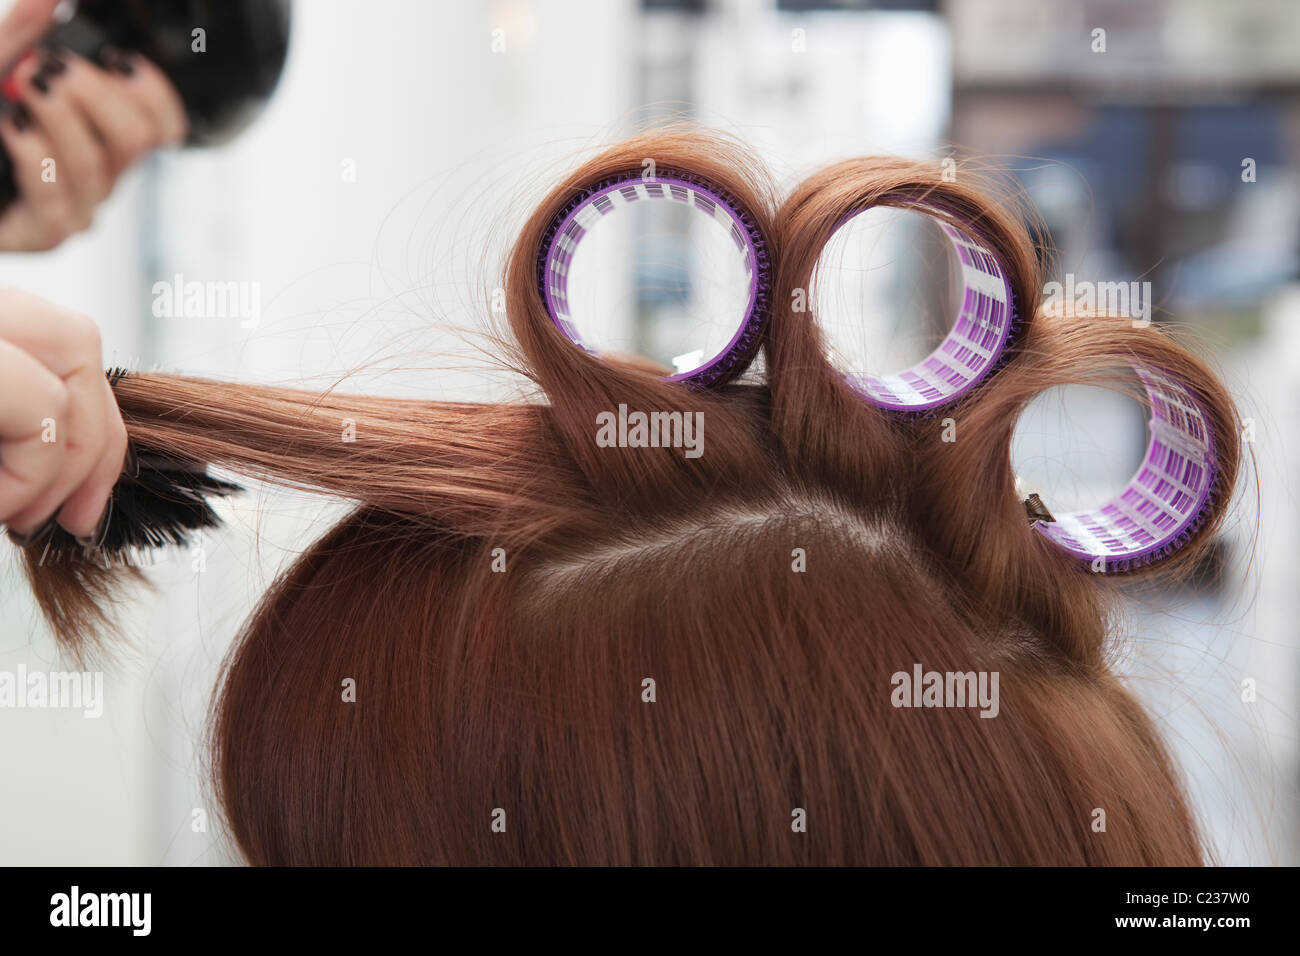 Three hairderssing rollers - Stock Image